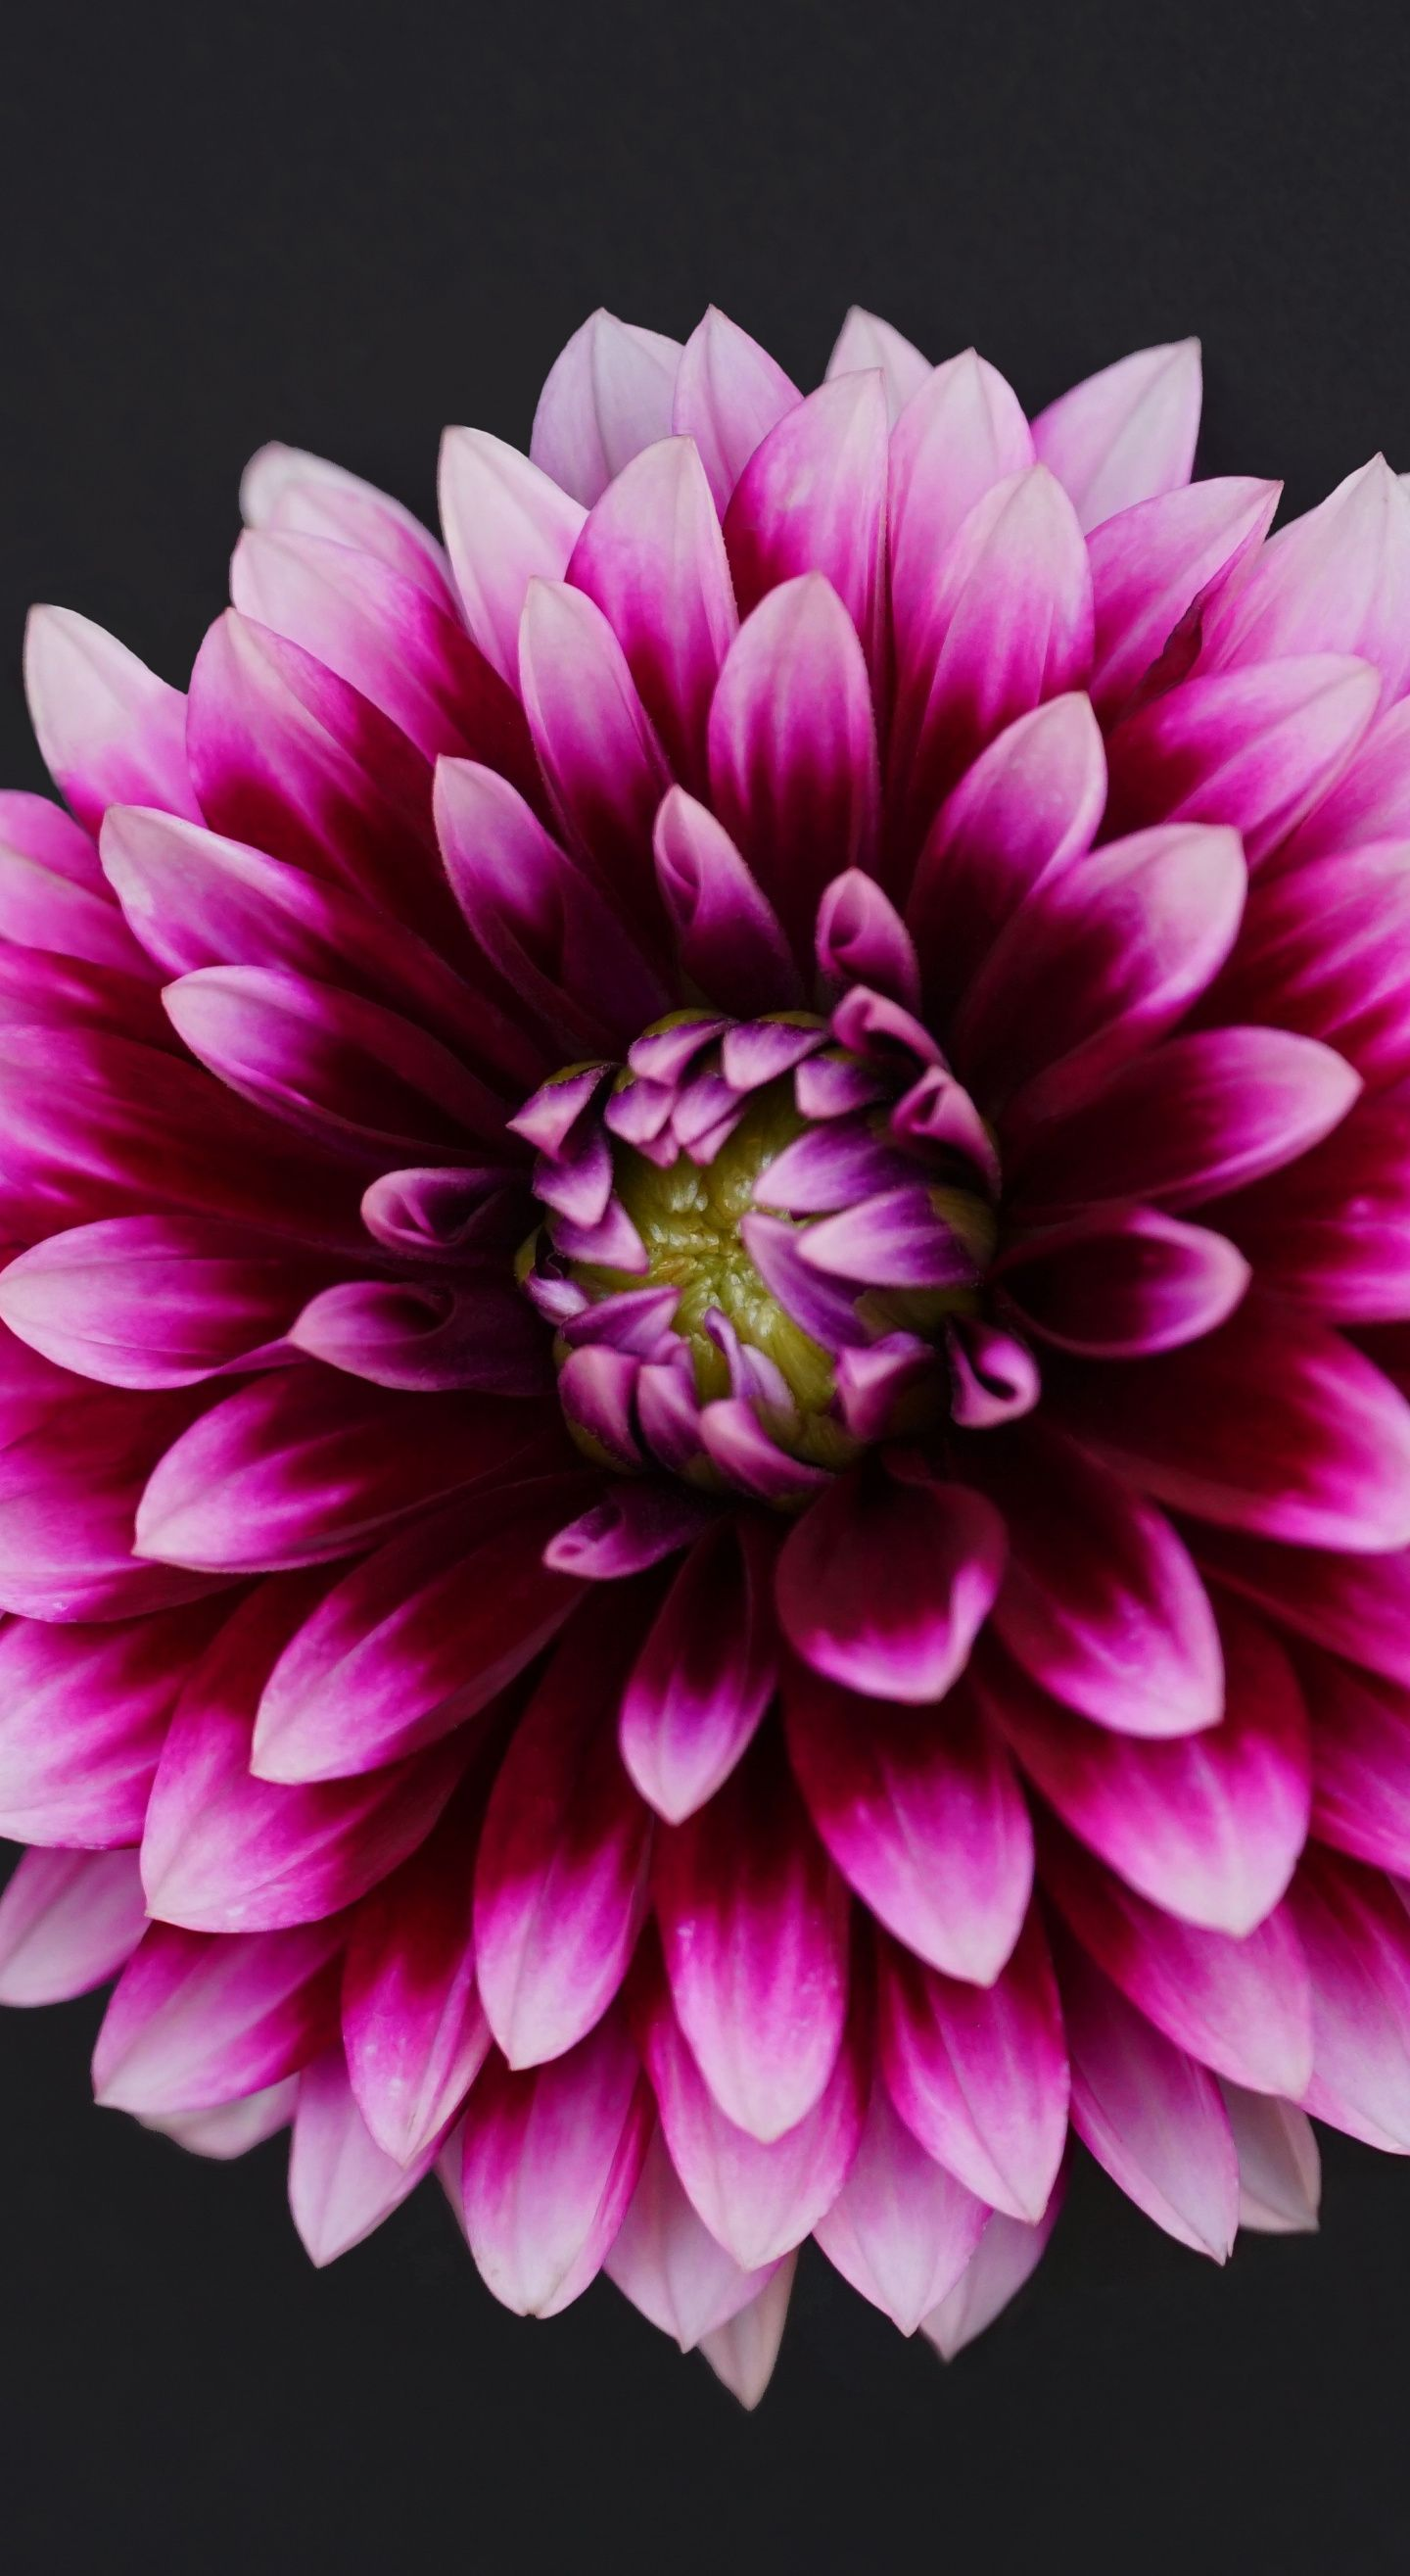 Dahlia Flowers Portrait Wallpaper Beautiful Flowers Flowers Flower Images